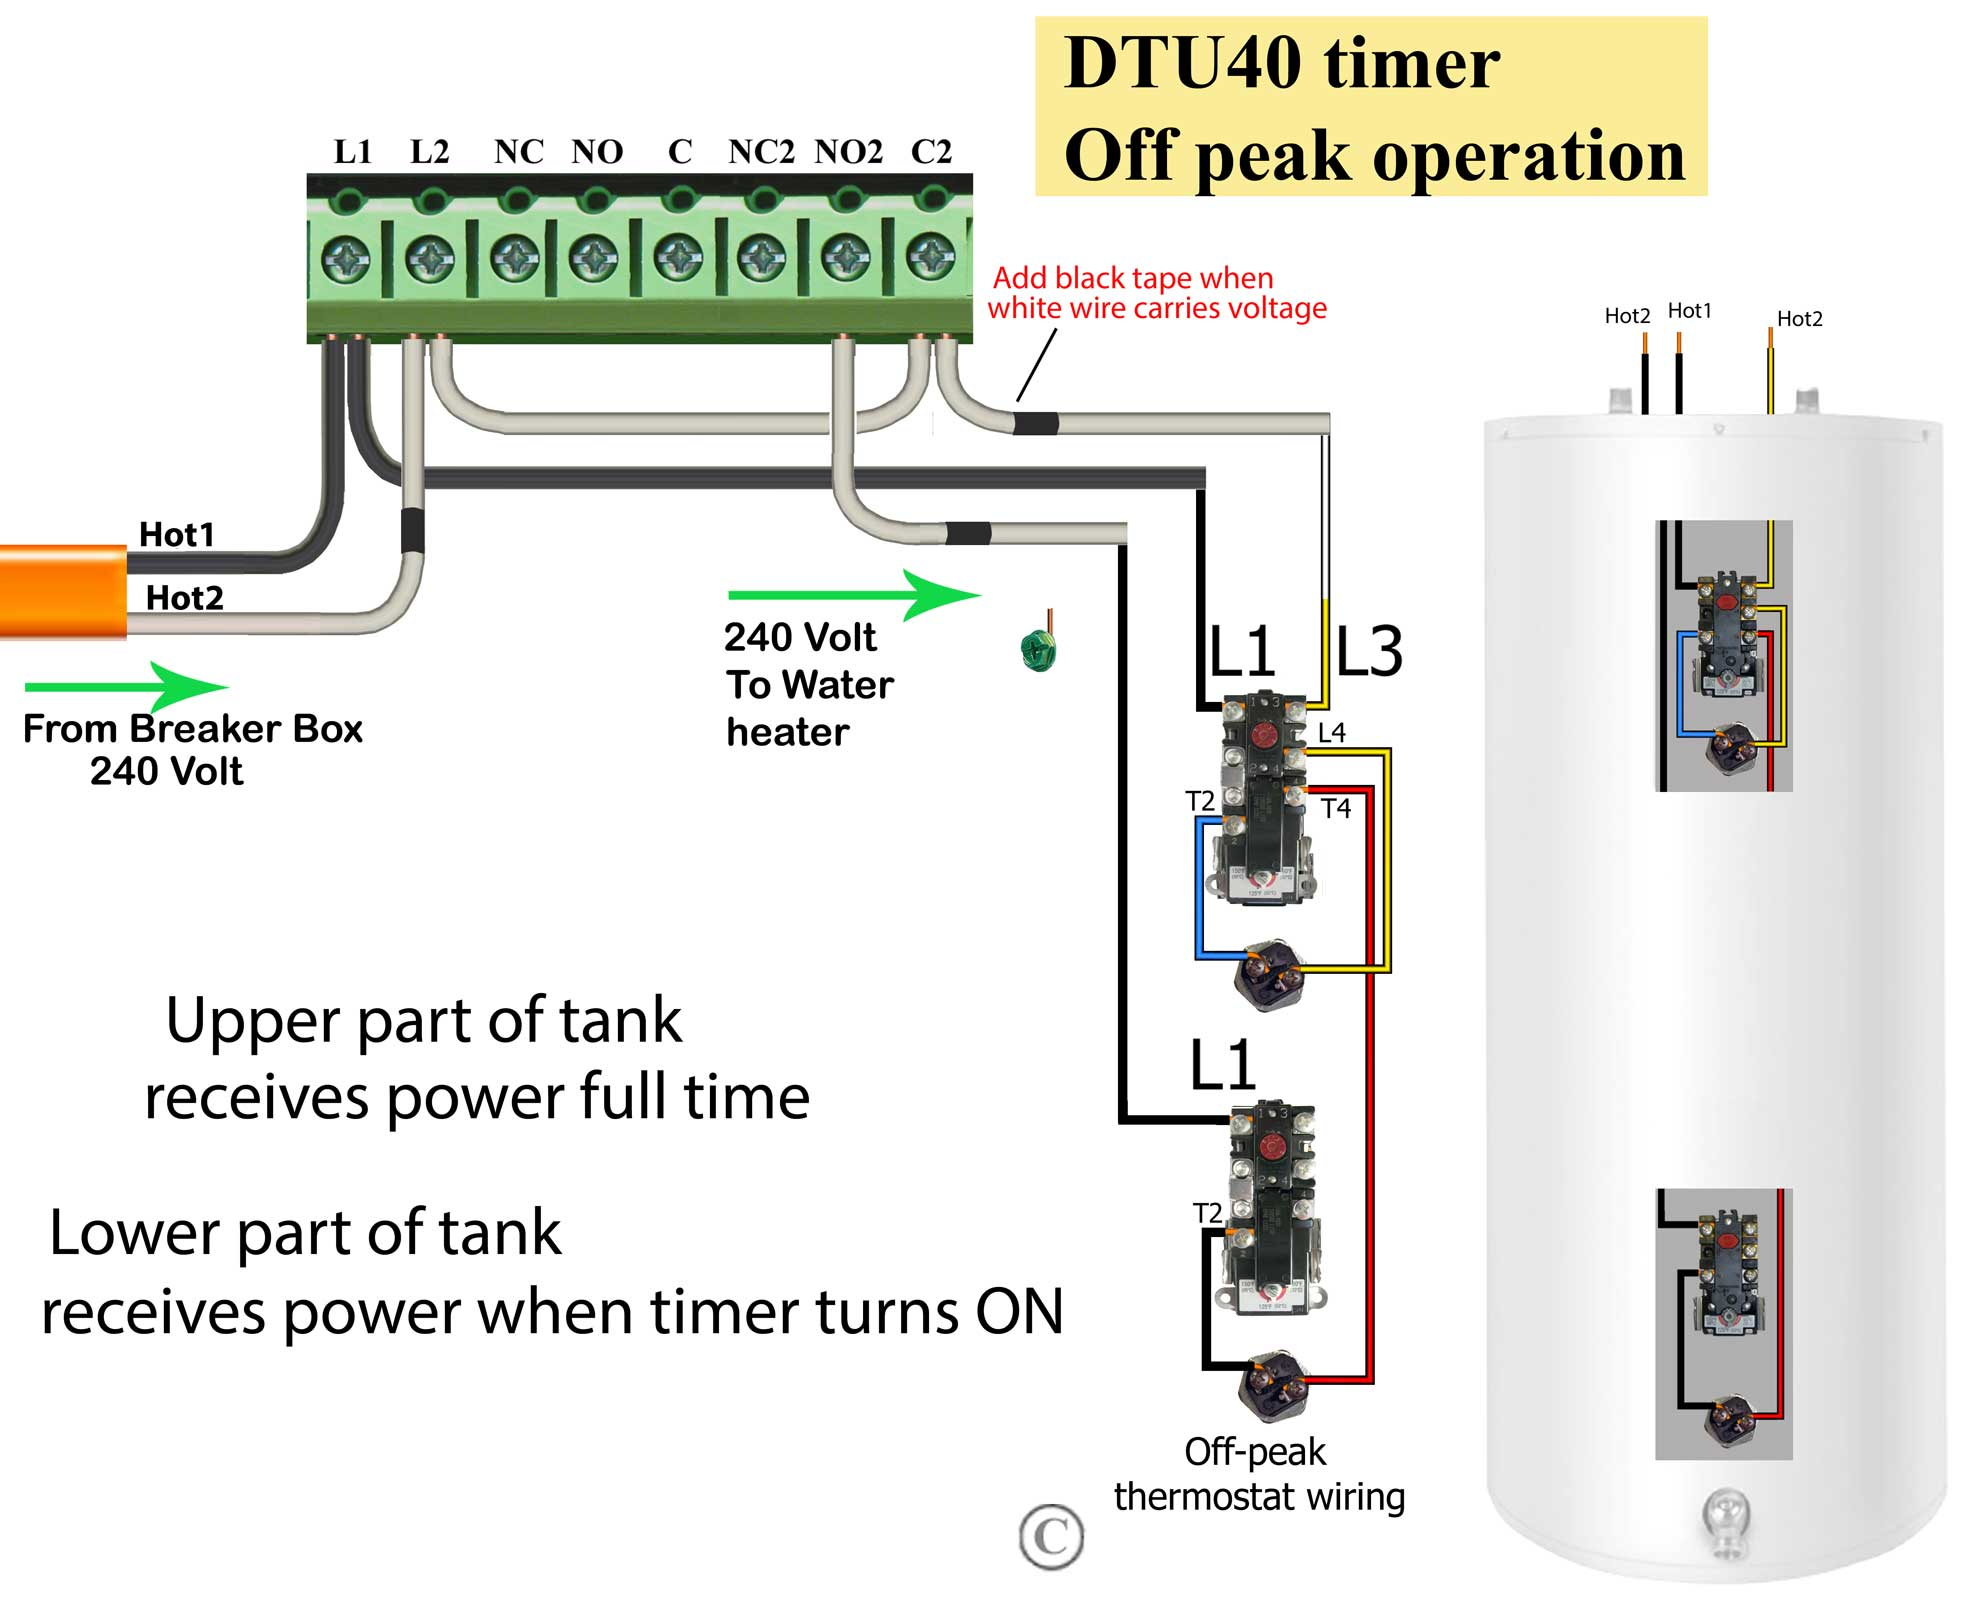 Timer Off Wiring Diagram Pictures Datajack How To Wire Peak Water Heater Thermostats Rh Waterheatertimer Org Live Well